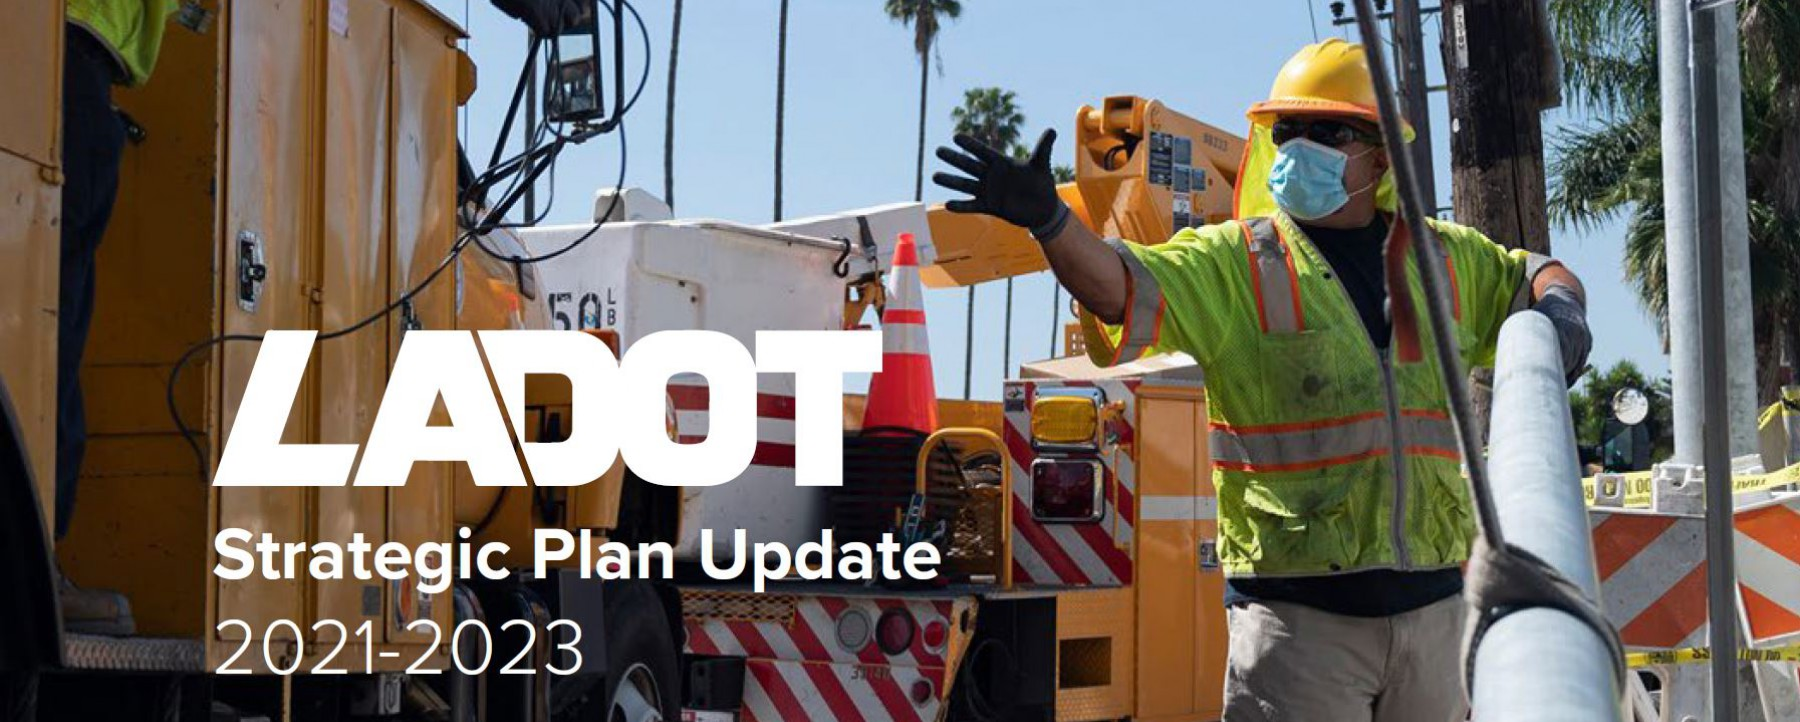 LADOT Strategic Plan 2021-2023